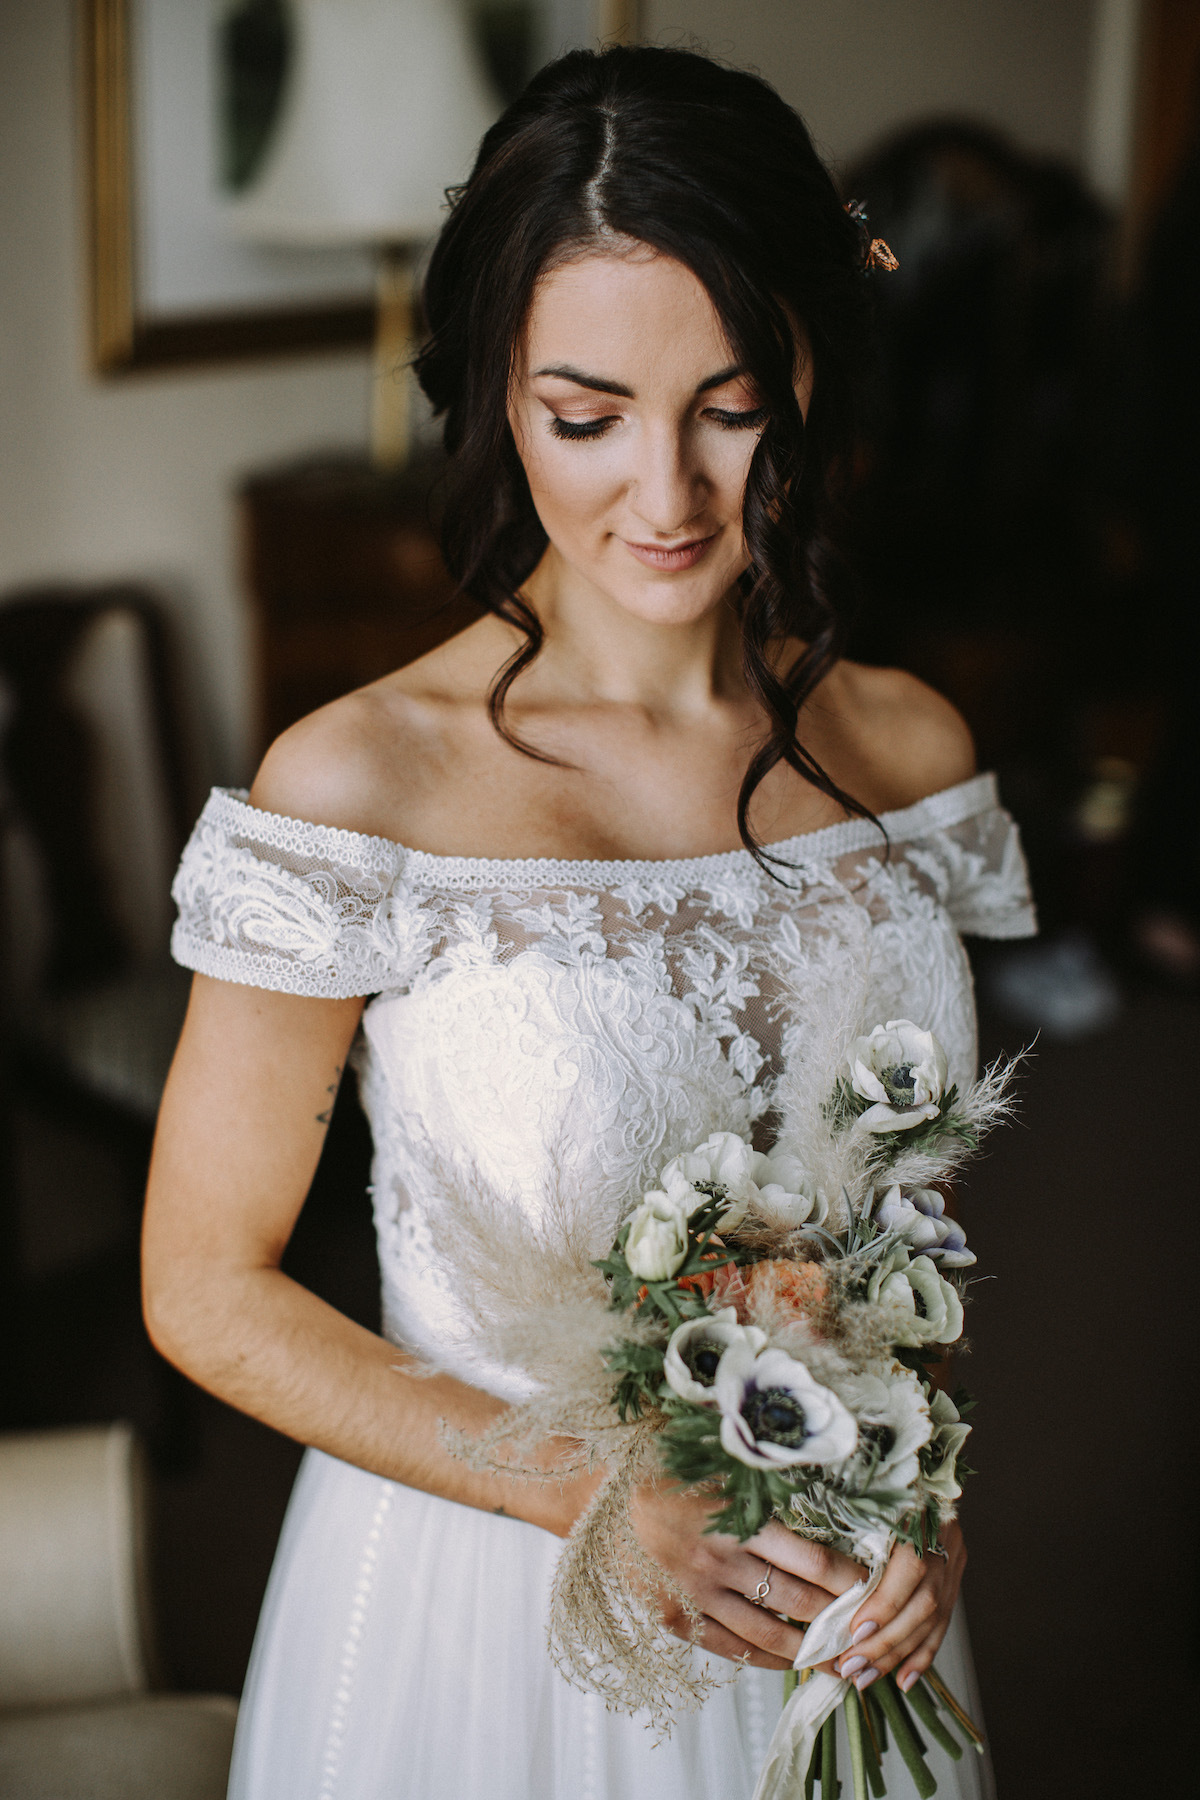 Boho bridal hair and makeup with handtied bouquet